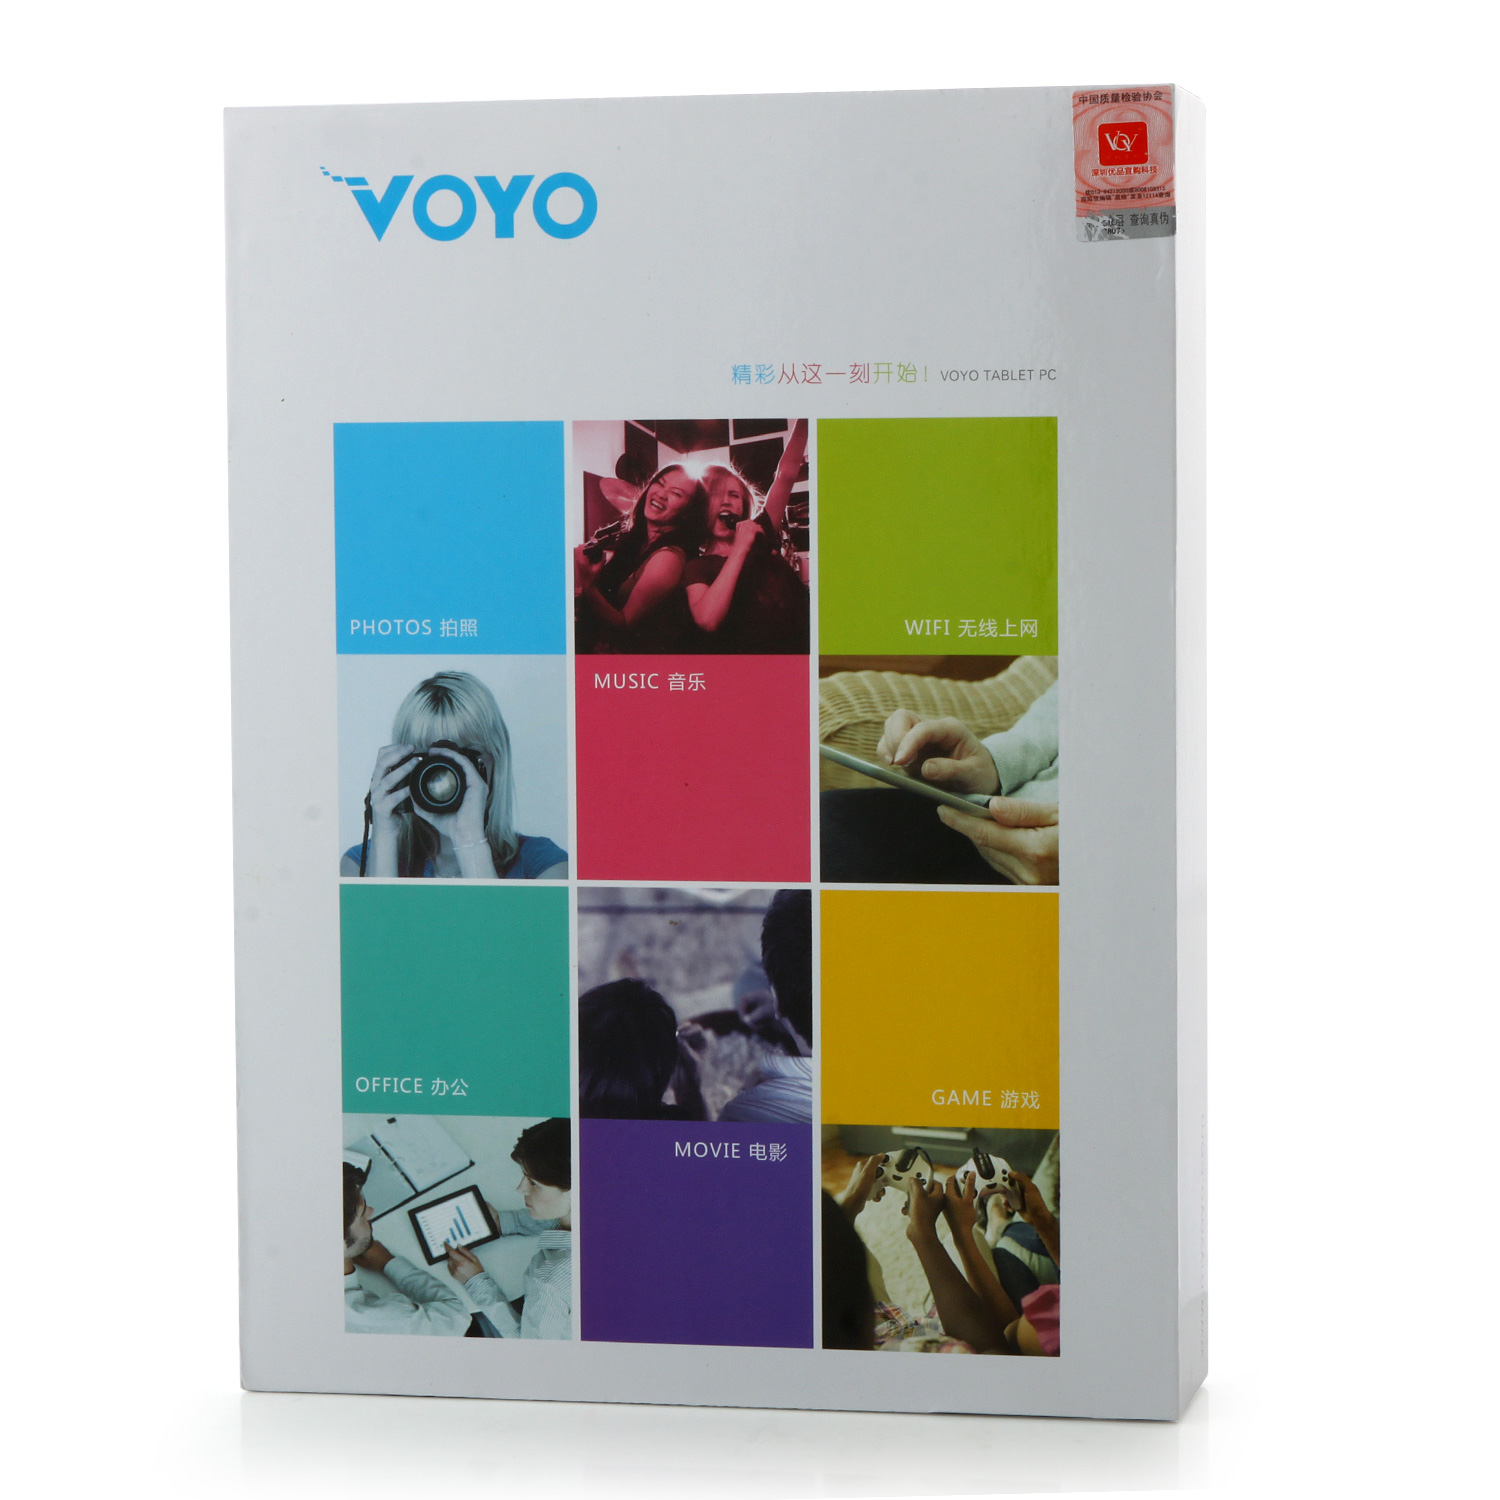 VOYO Q901HD 3G Tablet PC MTK6582 Quad Core 9.6 Inch Android 4.4 IPS 1GB 8GB White